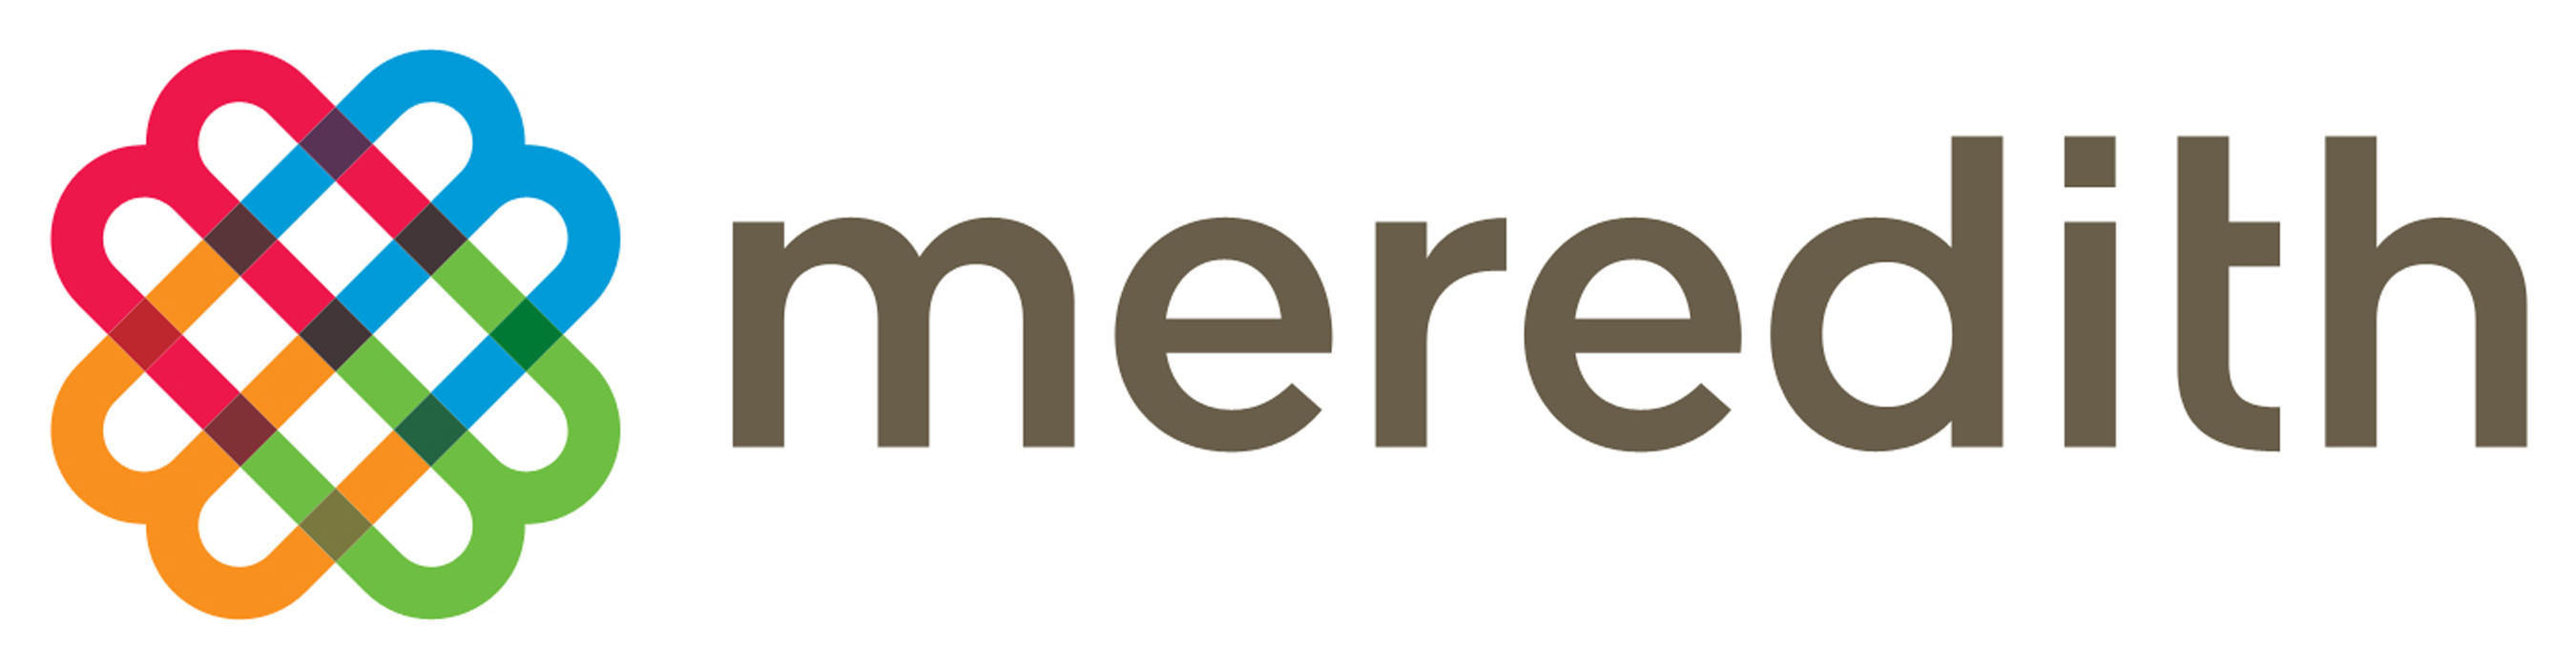 Meredith introduces an updated market positioning and logo that reflect the strength of Meredith's national  ...